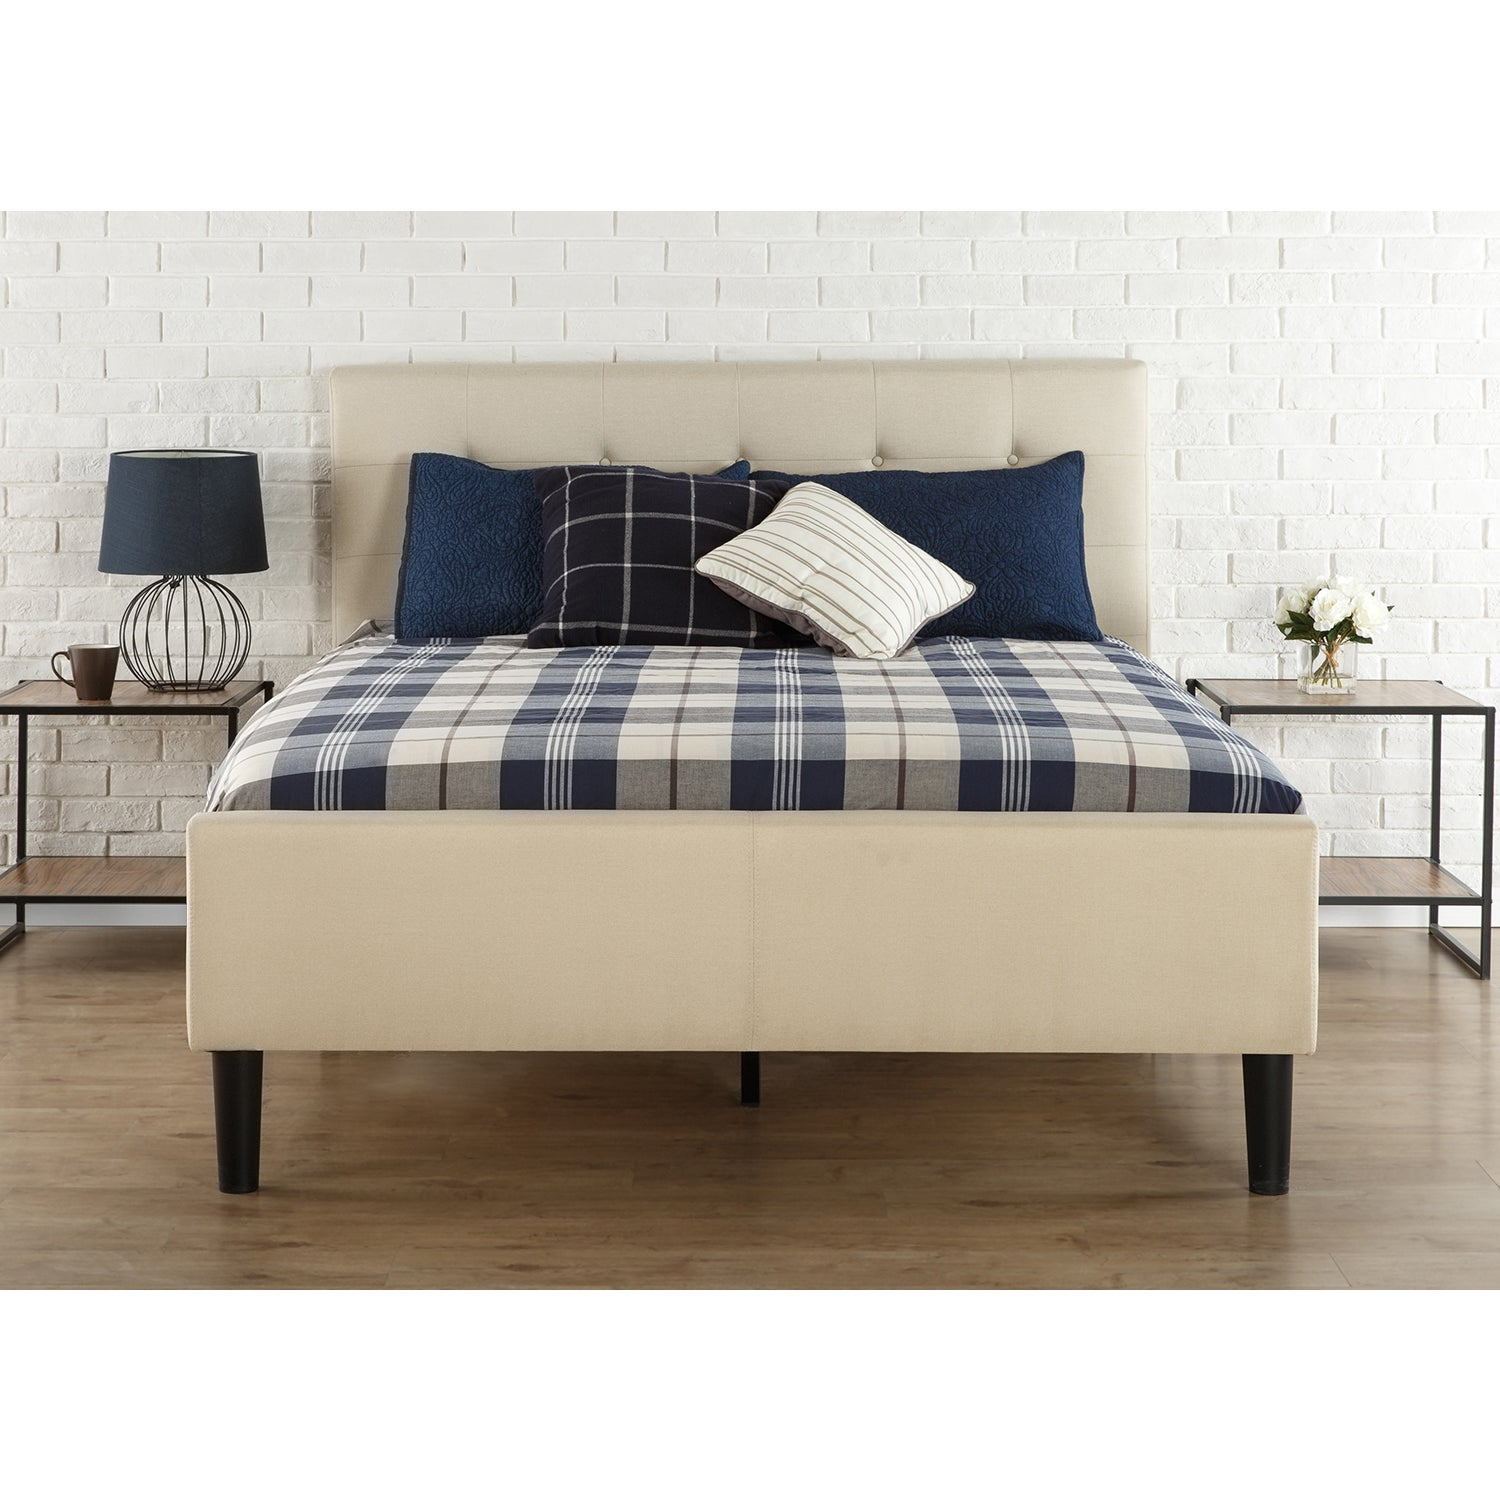 Priage by Zinus King Size Upholstered Button-Tufted Platform Bed with Wooden Slats (King)